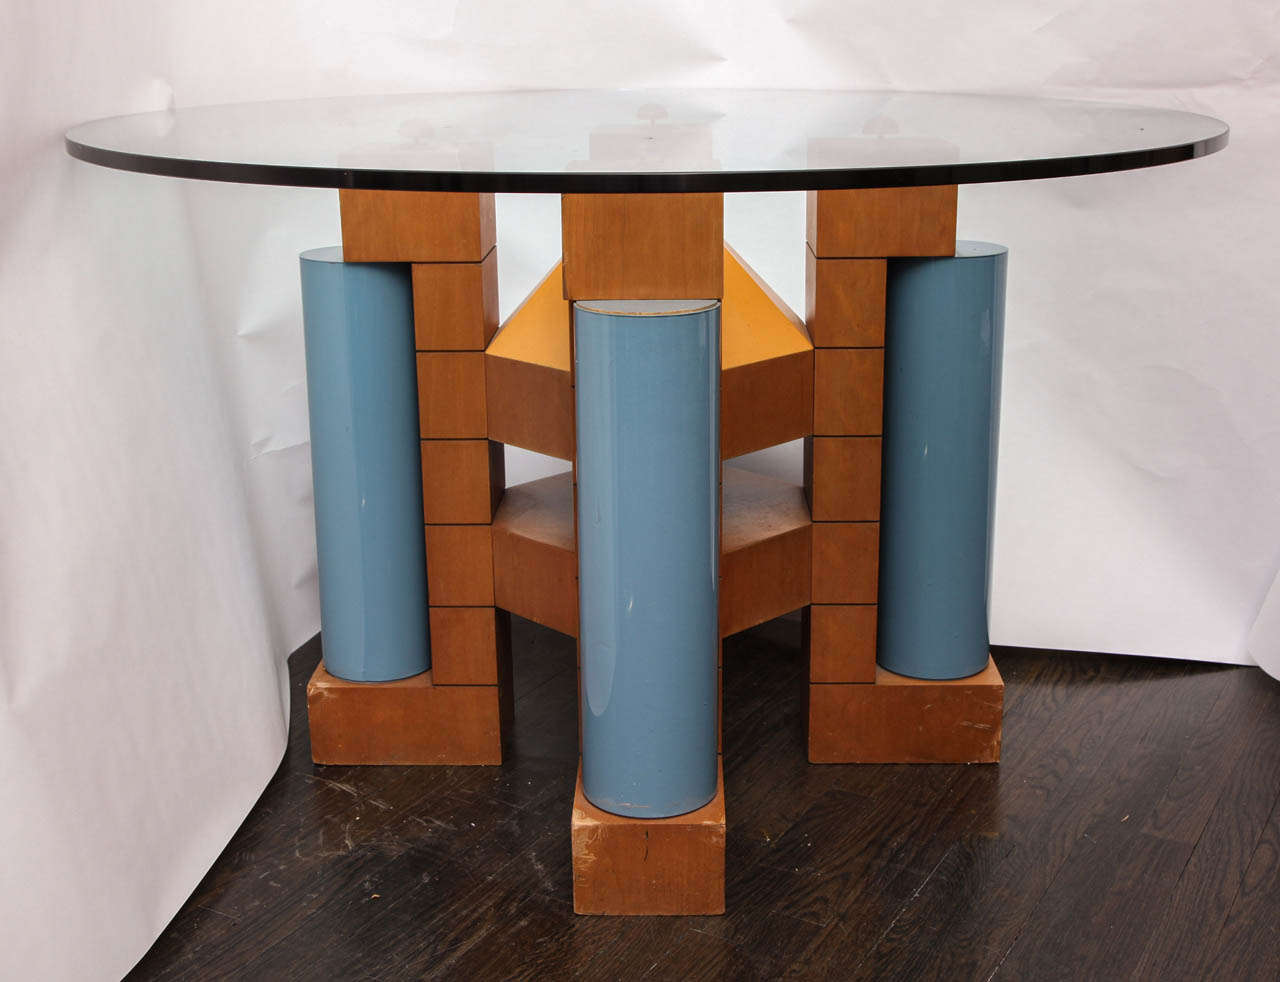 A 1980's Post Modern Dining Table by Michael Graves 2